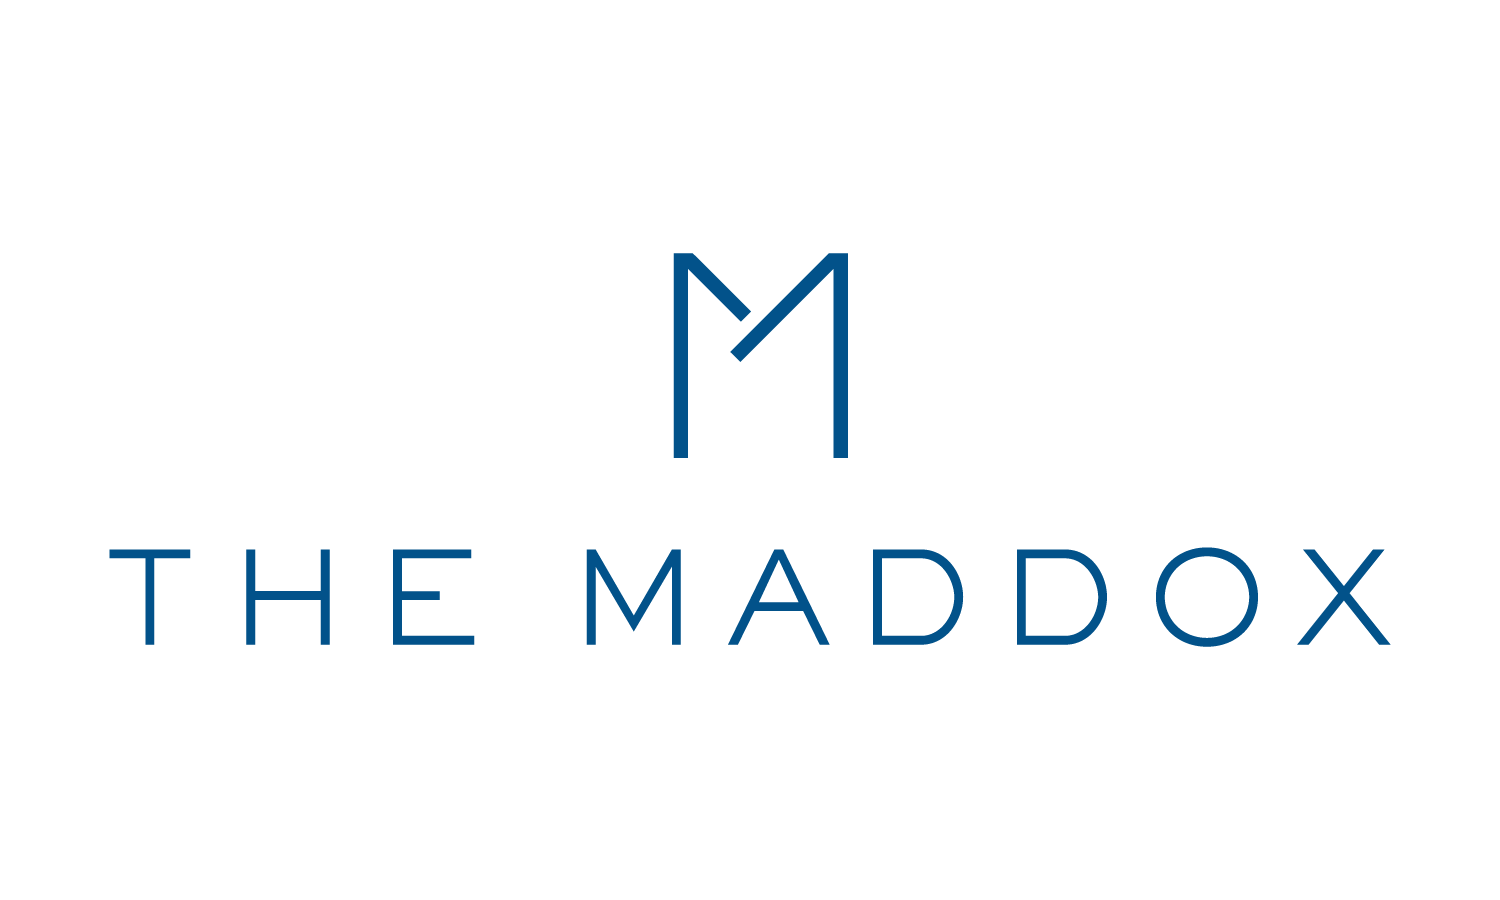 The Maddox logo